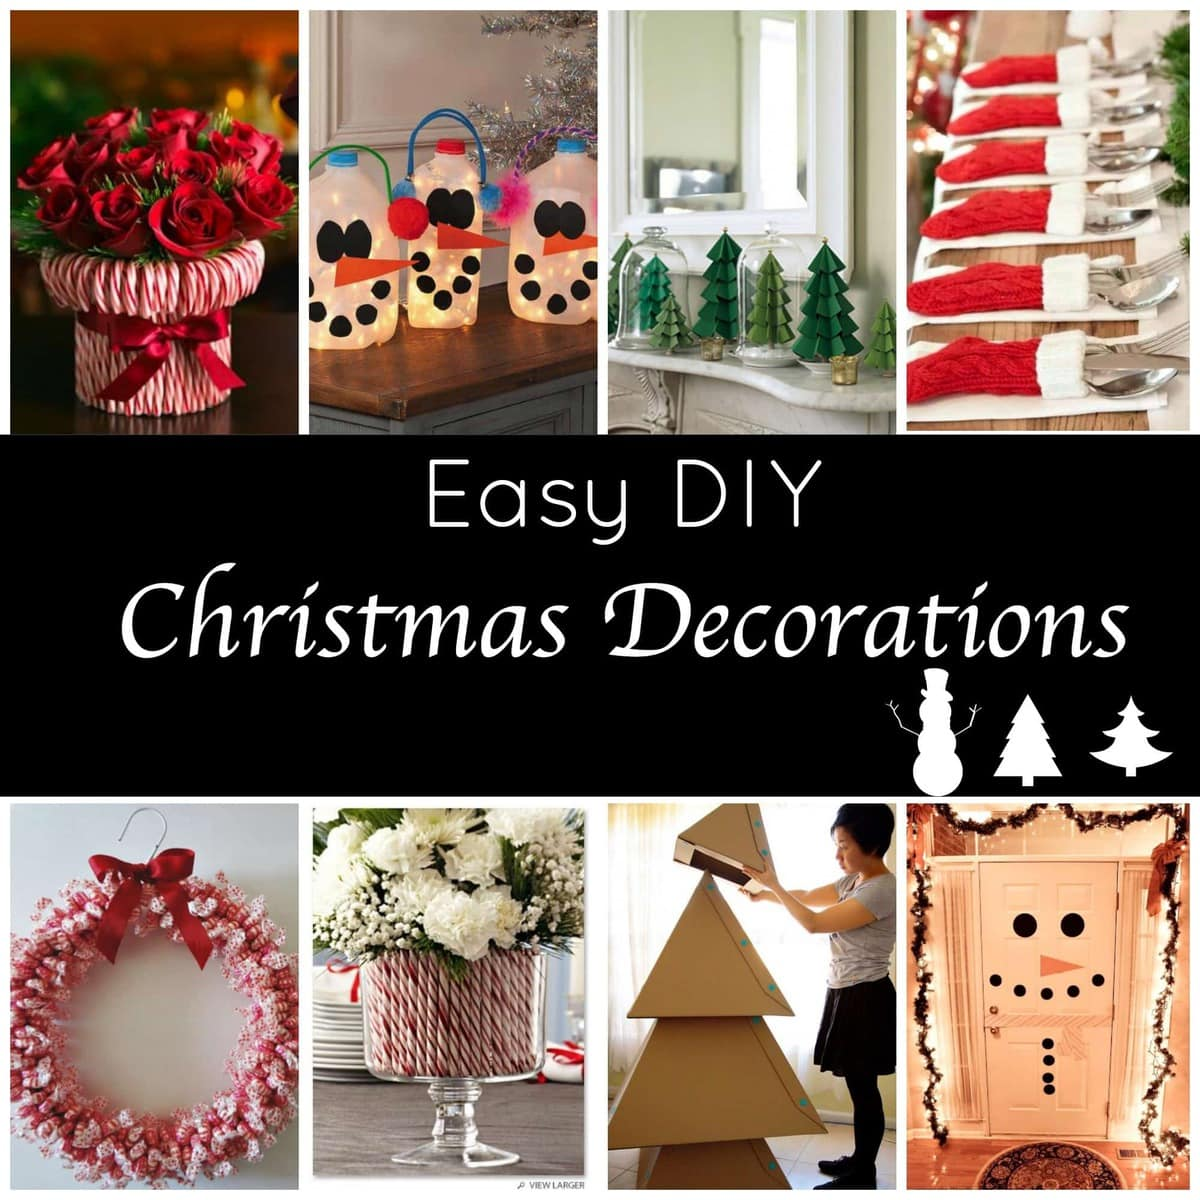 Cute and easy diy holiday decorations for a festive home for Home decor xmas